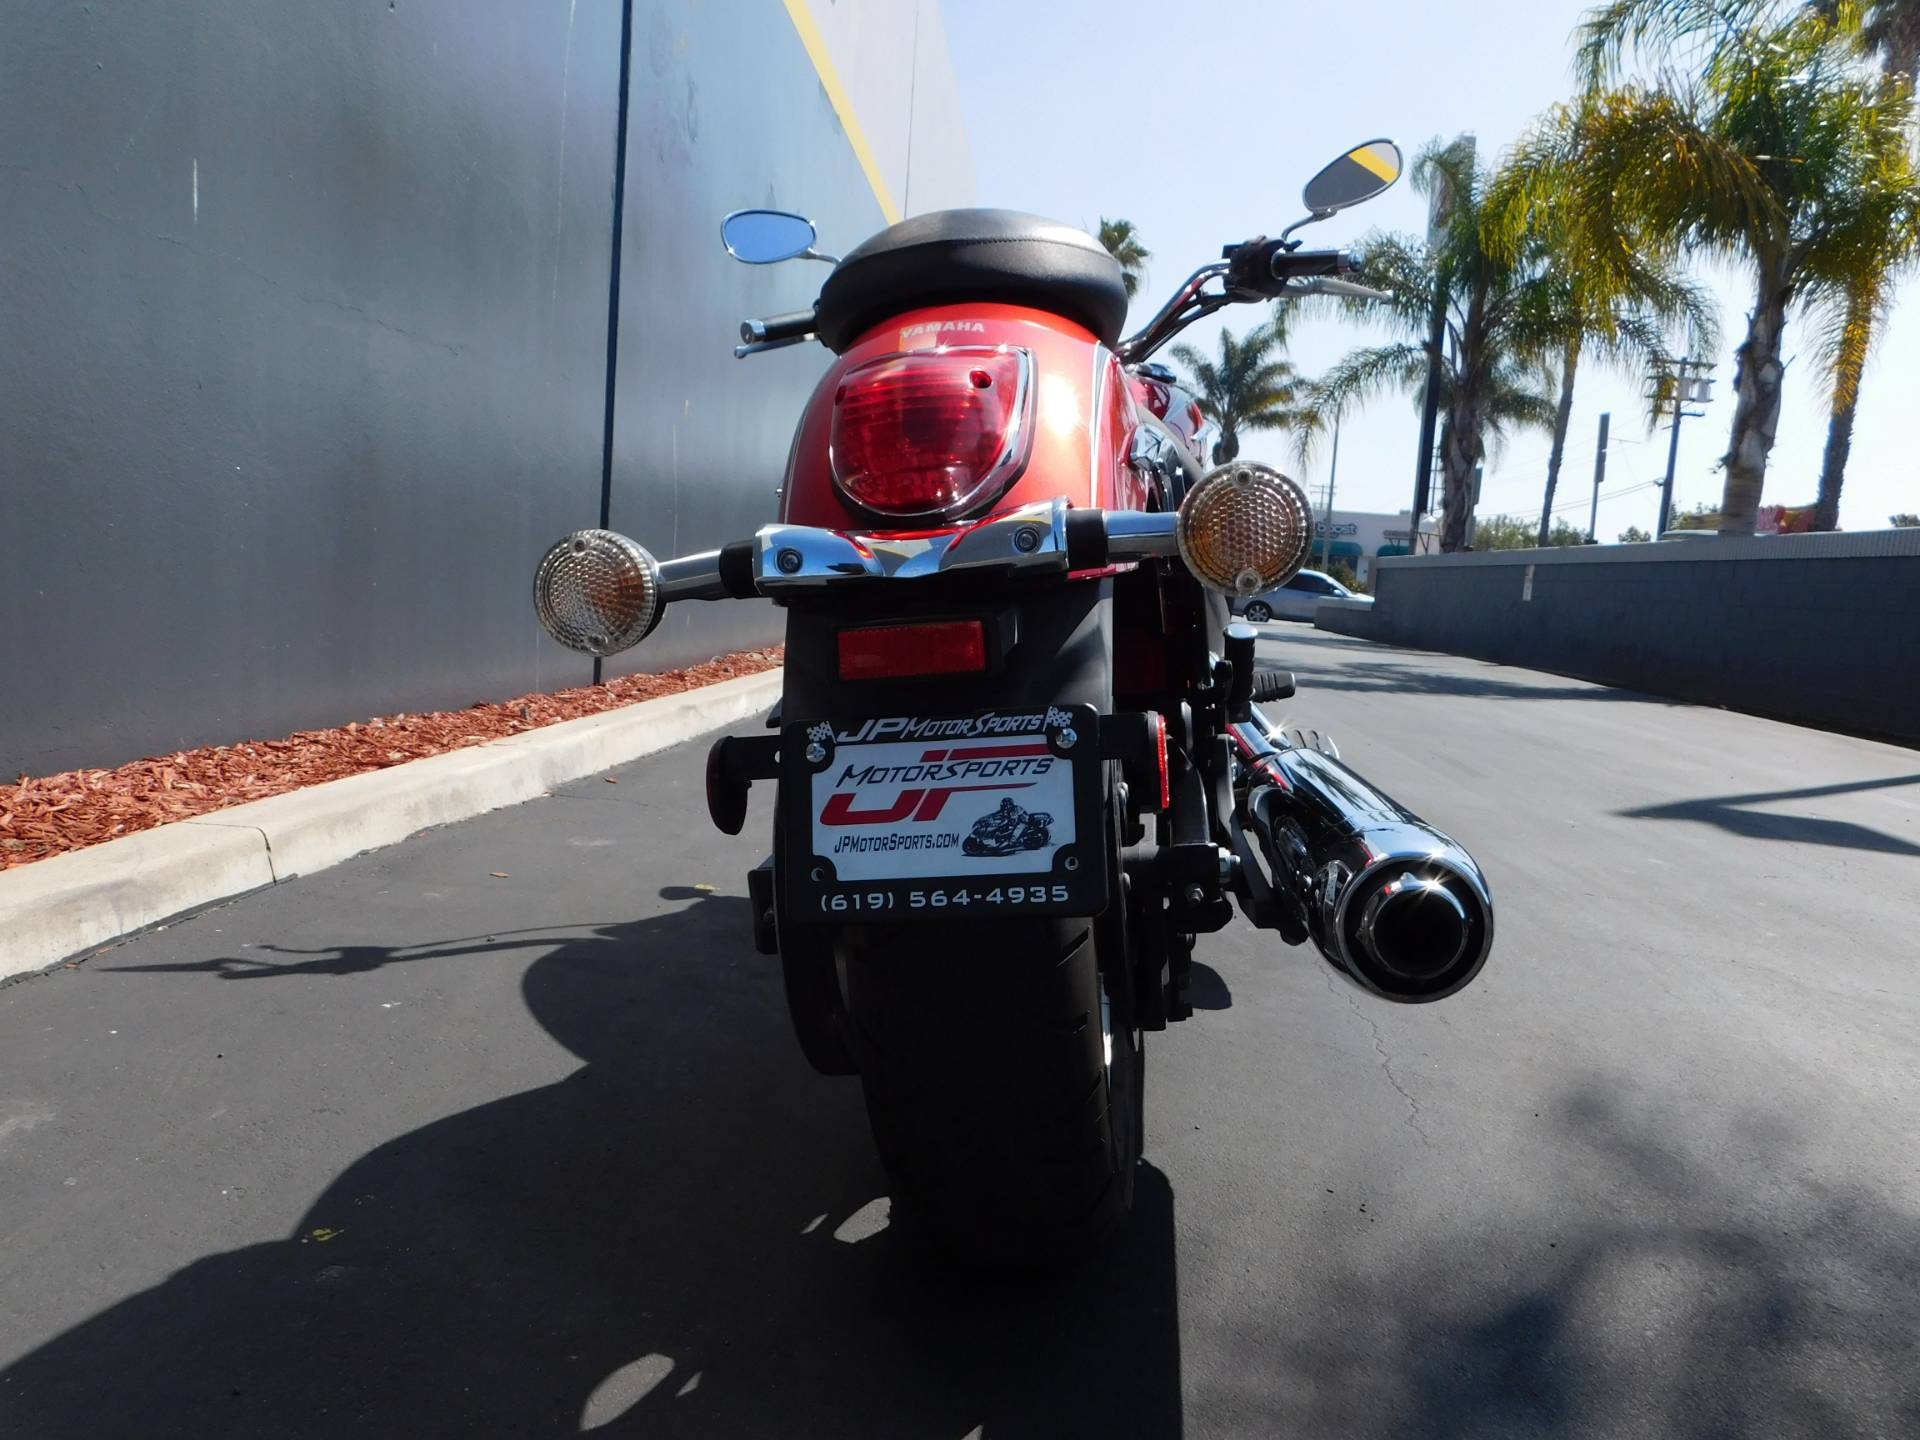 2012 Yamaha V Star 950 in Chula Vista, California - Photo 5